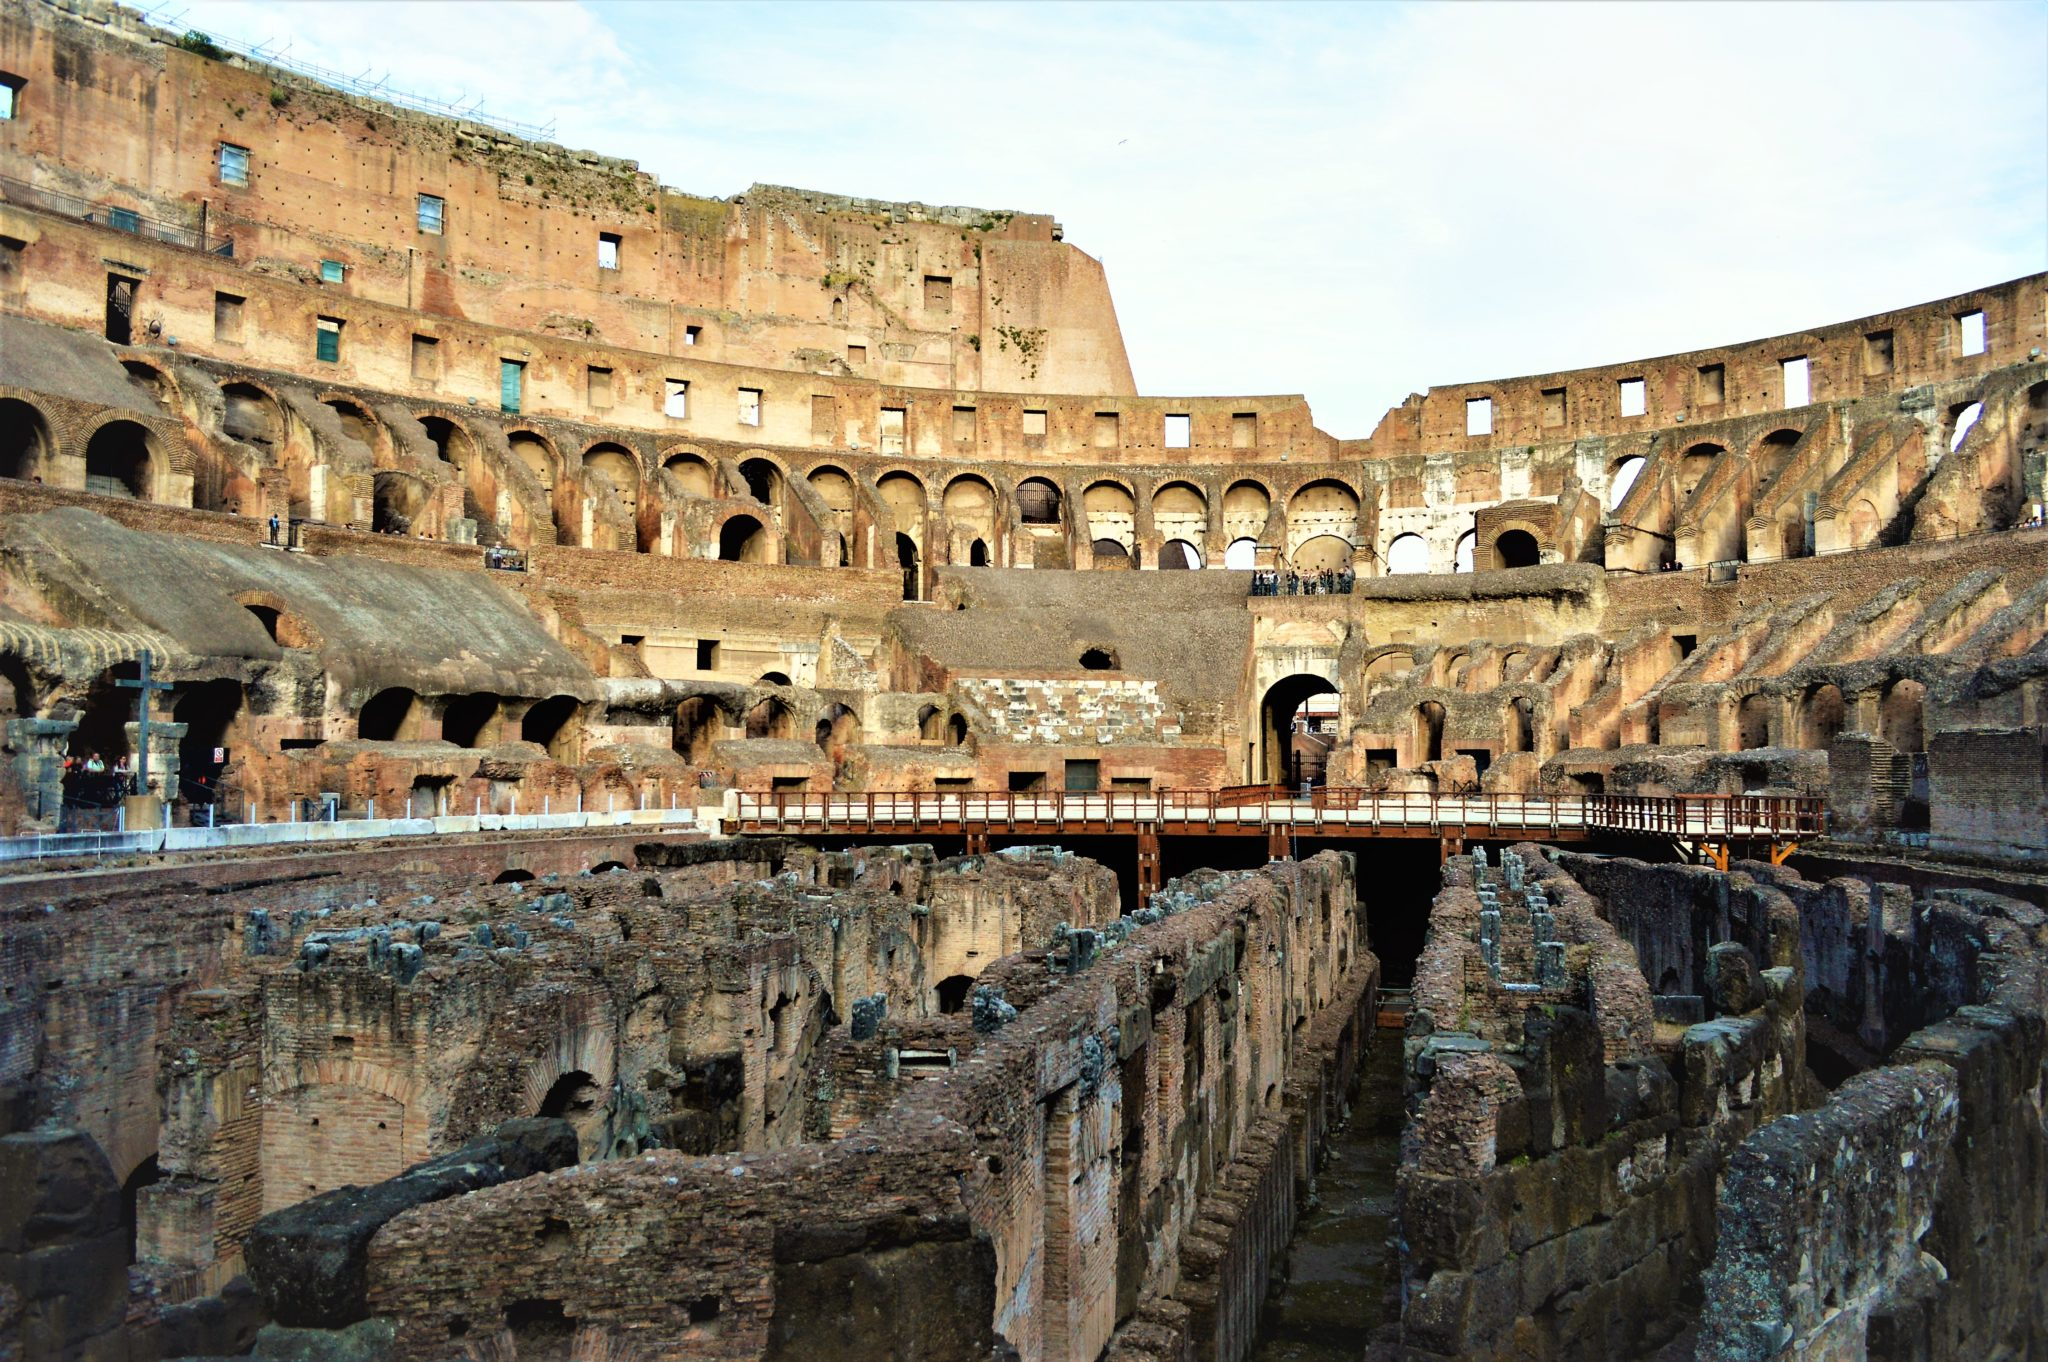 The grounds of the Roman Colosseum, Rome, Italy